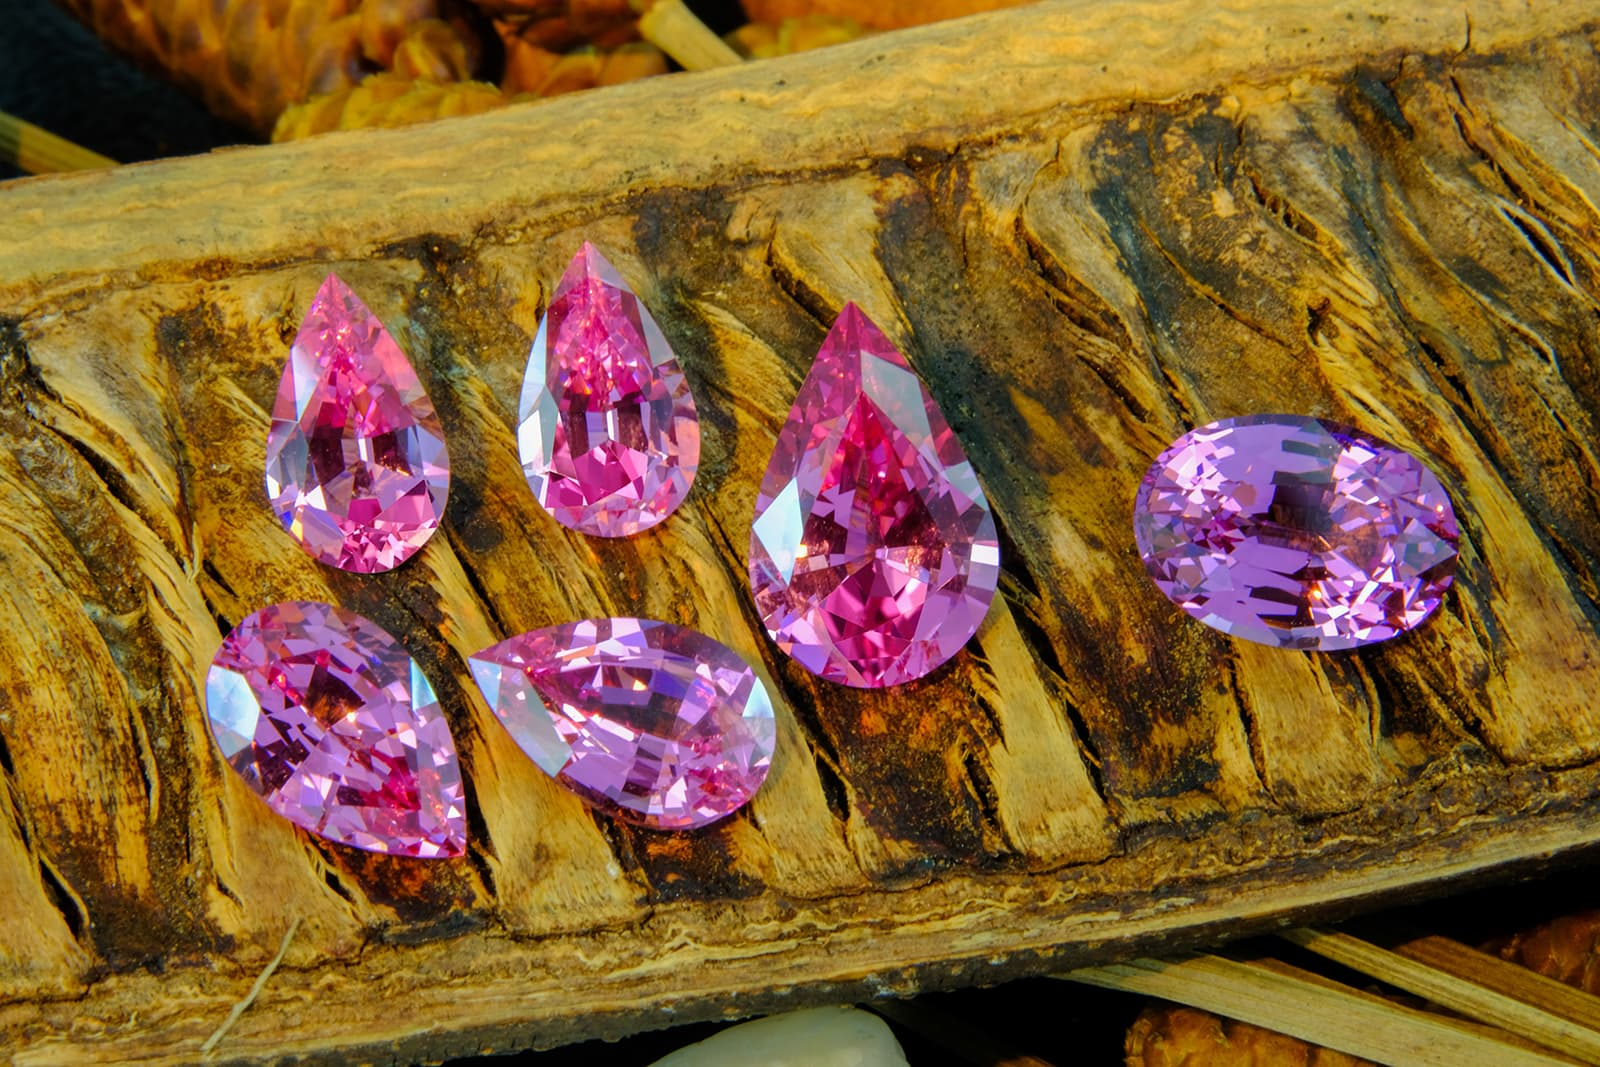 Vladyslav Y. Yavorskyy pink spinel (clockwise from top) pair of pear cuts totaling 5.50ct, 4.96ct pear cut, 4.52ct oval cut, and pair of pear cuts totaling 7.76ct